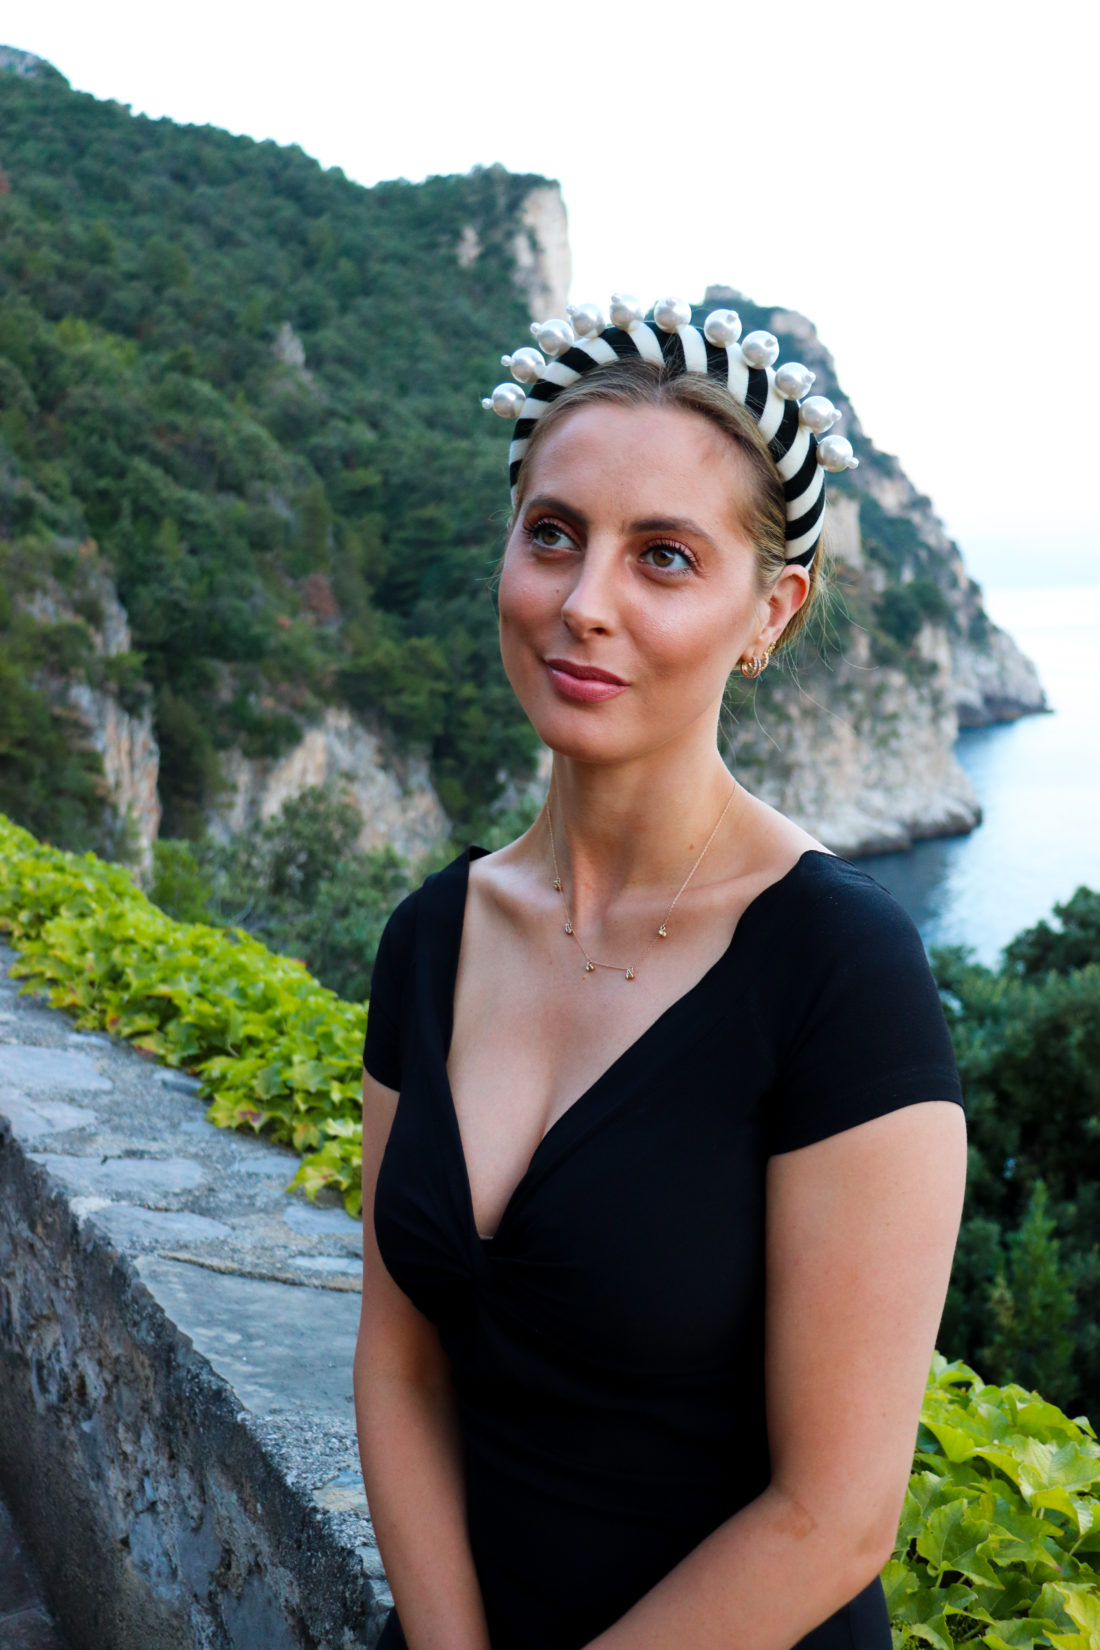 Eva Amurri Martino wears a pearl studded headband in the Amalfi Coast